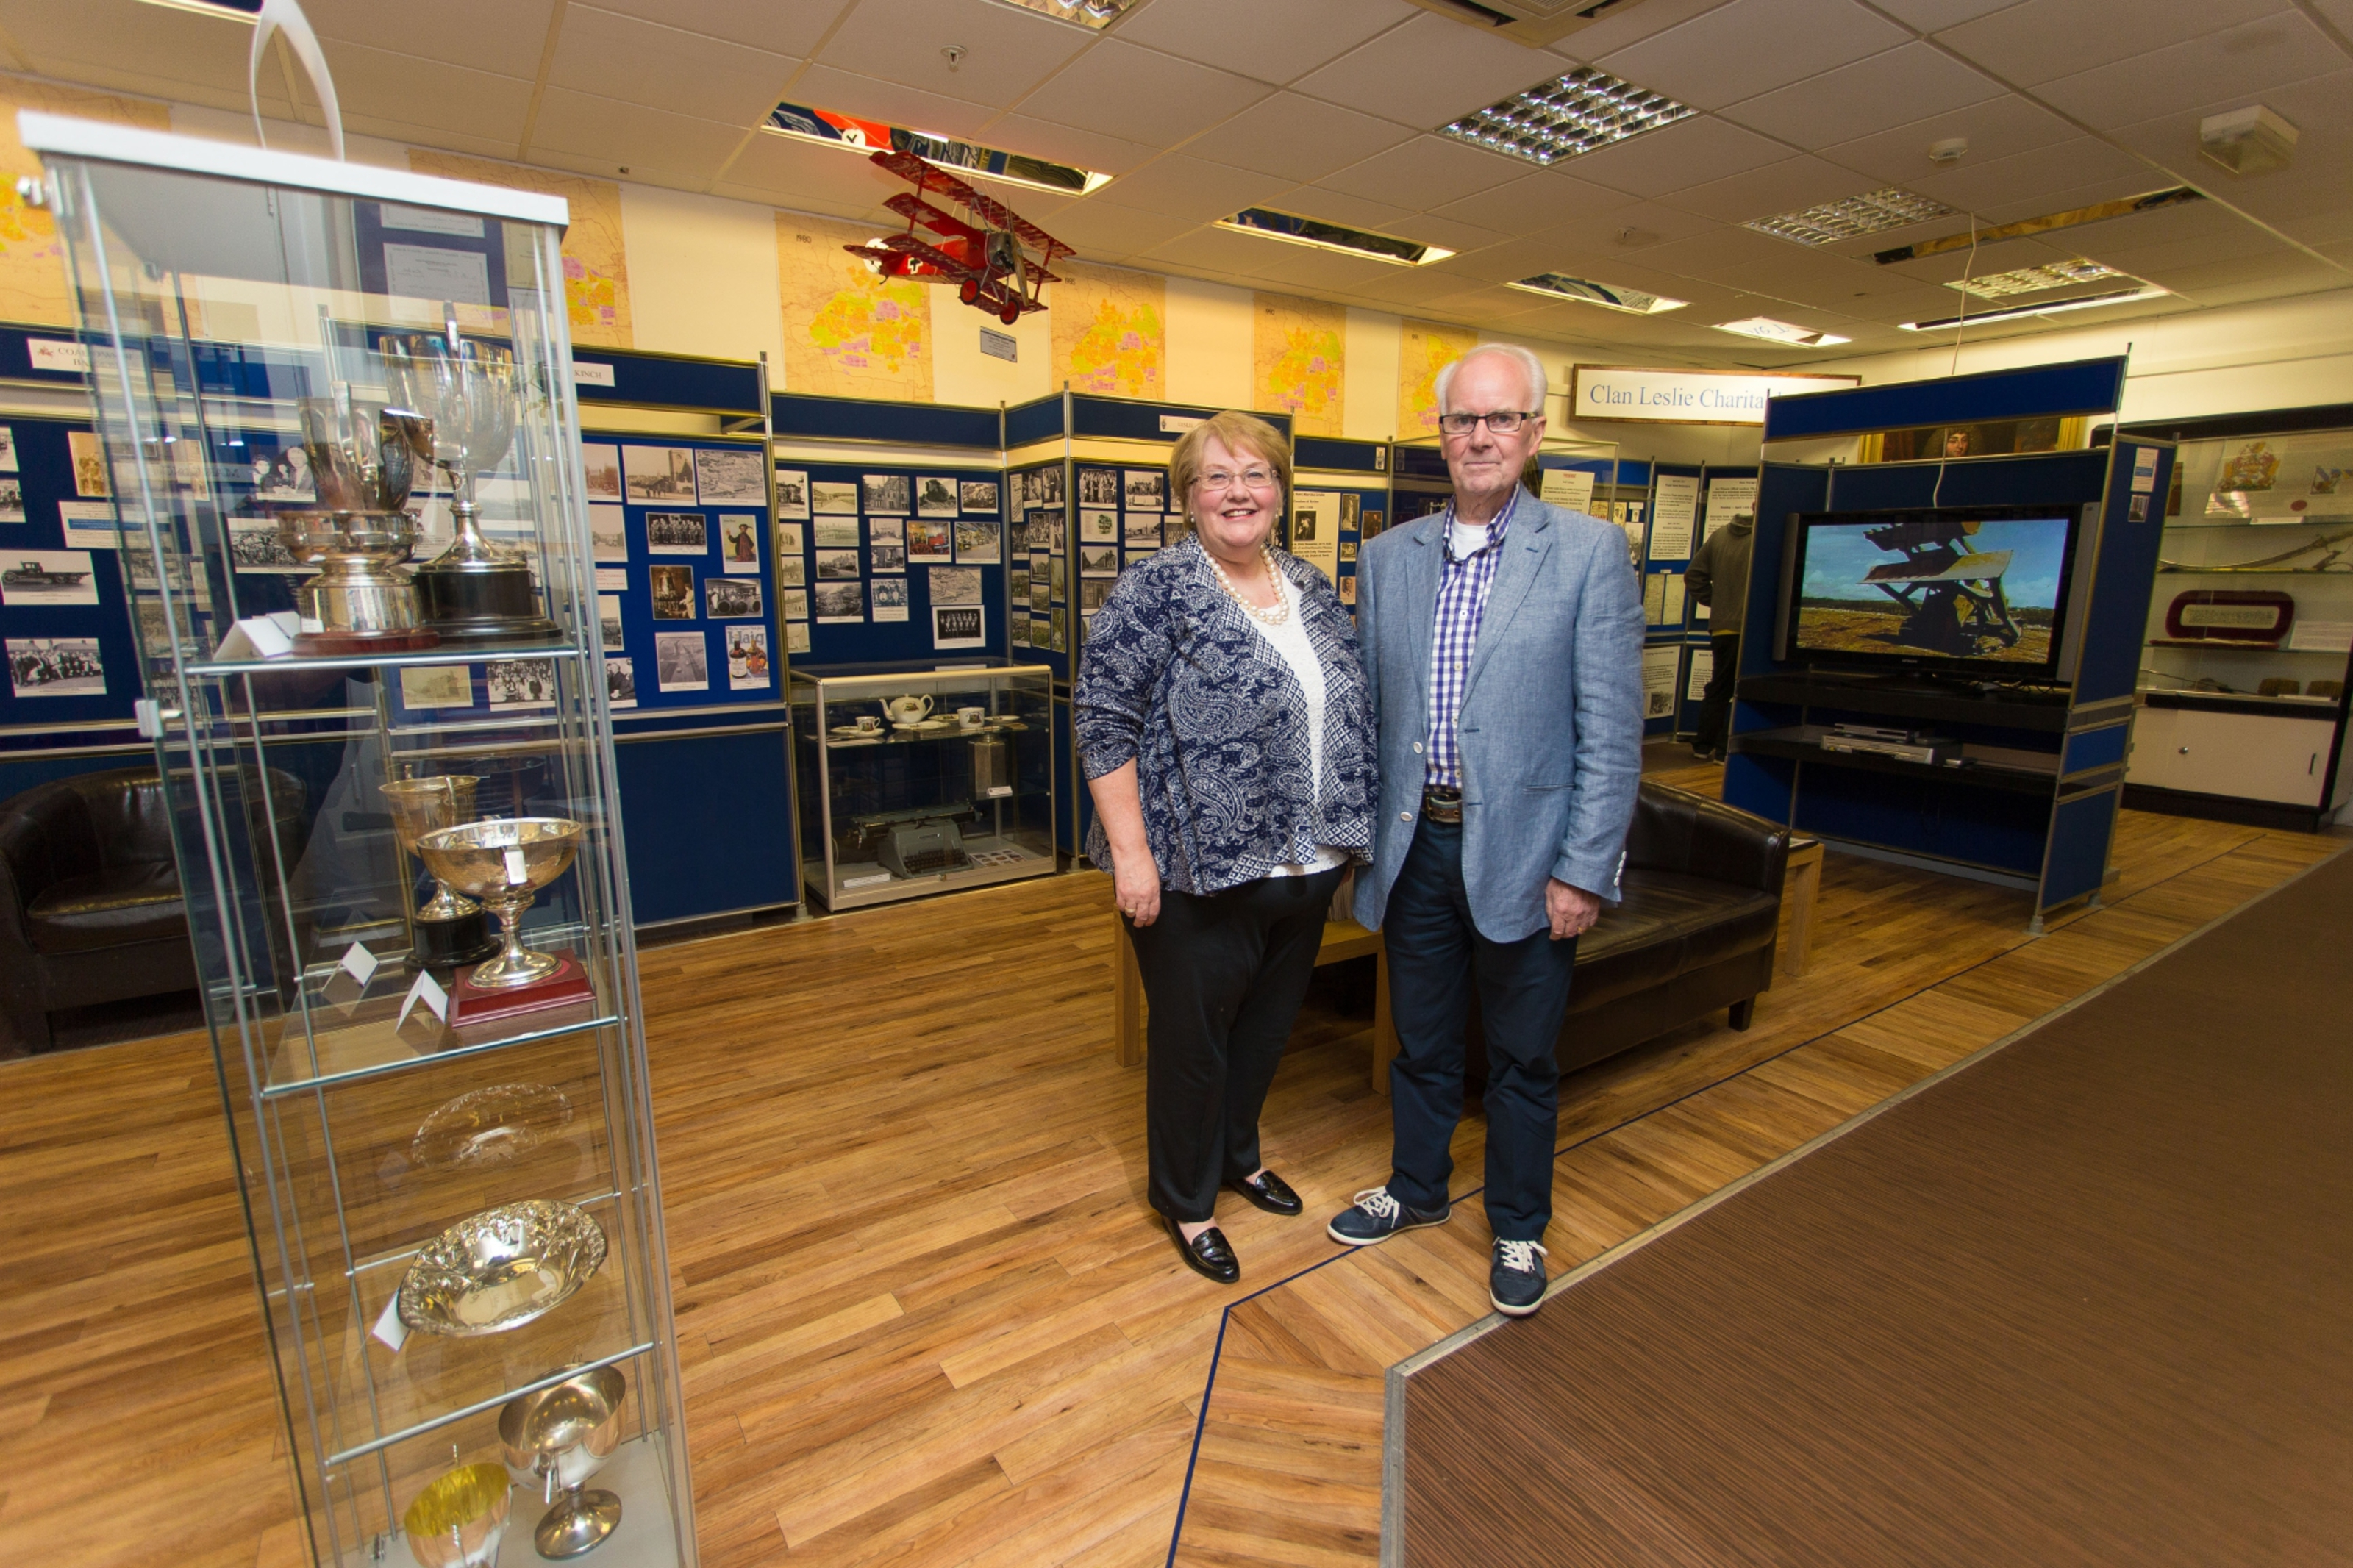 Founder Linda Ballingall and trustee David Brown at the heritage centre which has closed after 10 years.